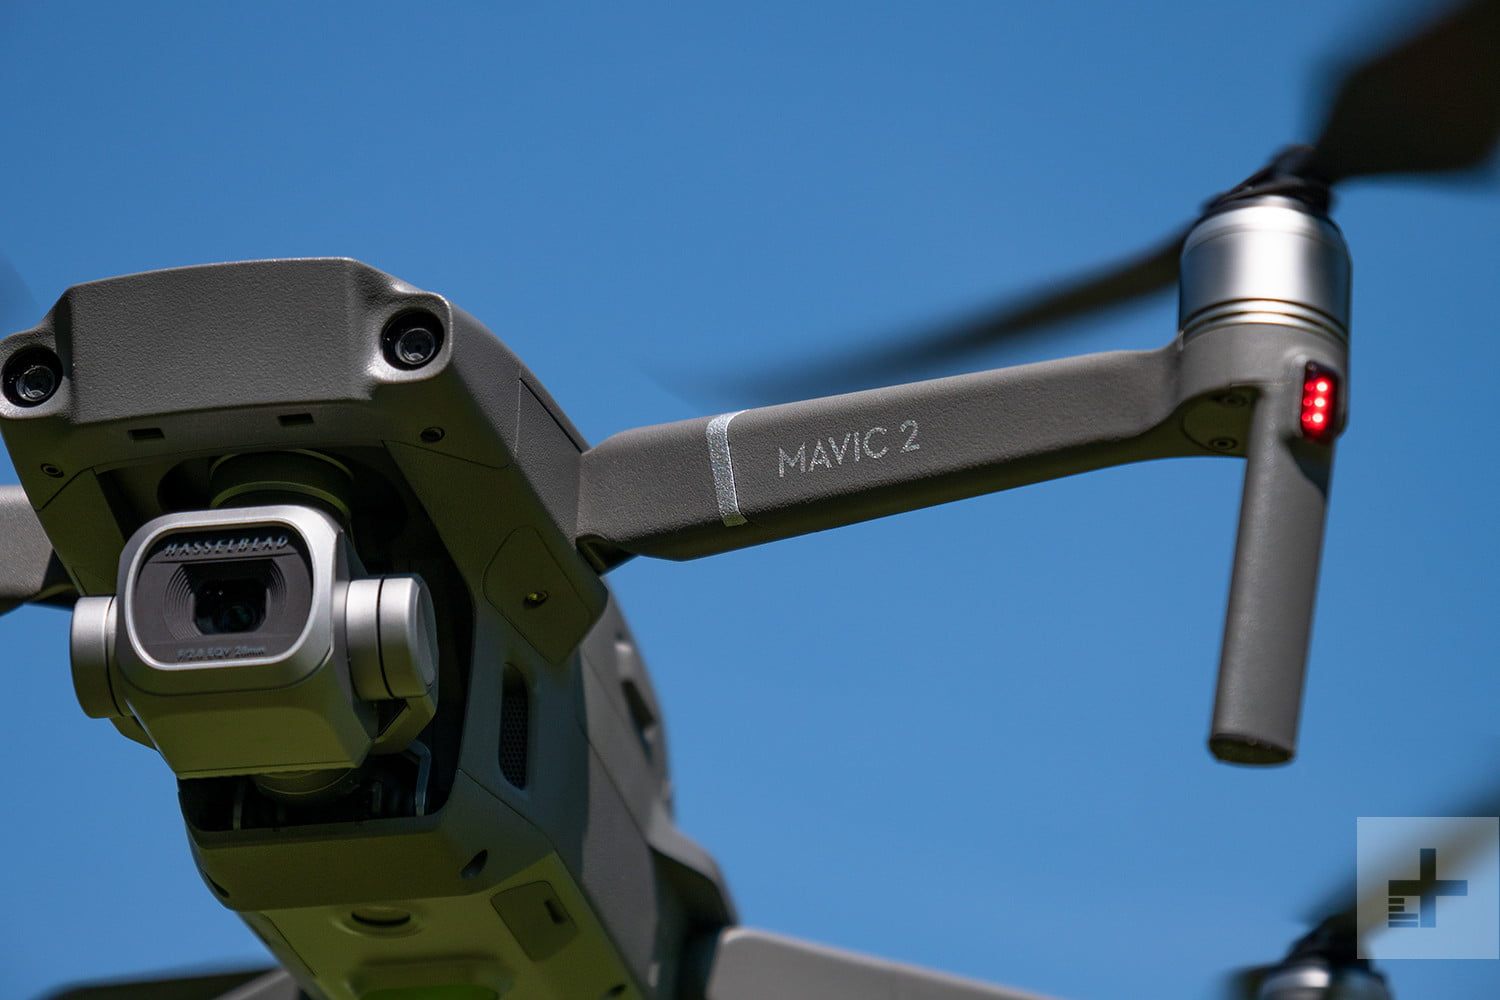 b31964856ee Last but not least, the Mavic 2 boasts one of two new cameras. The Mavic 2  Pro carries an integrated Hasselblad camera with a 1-inch CMOS sensor and  ...